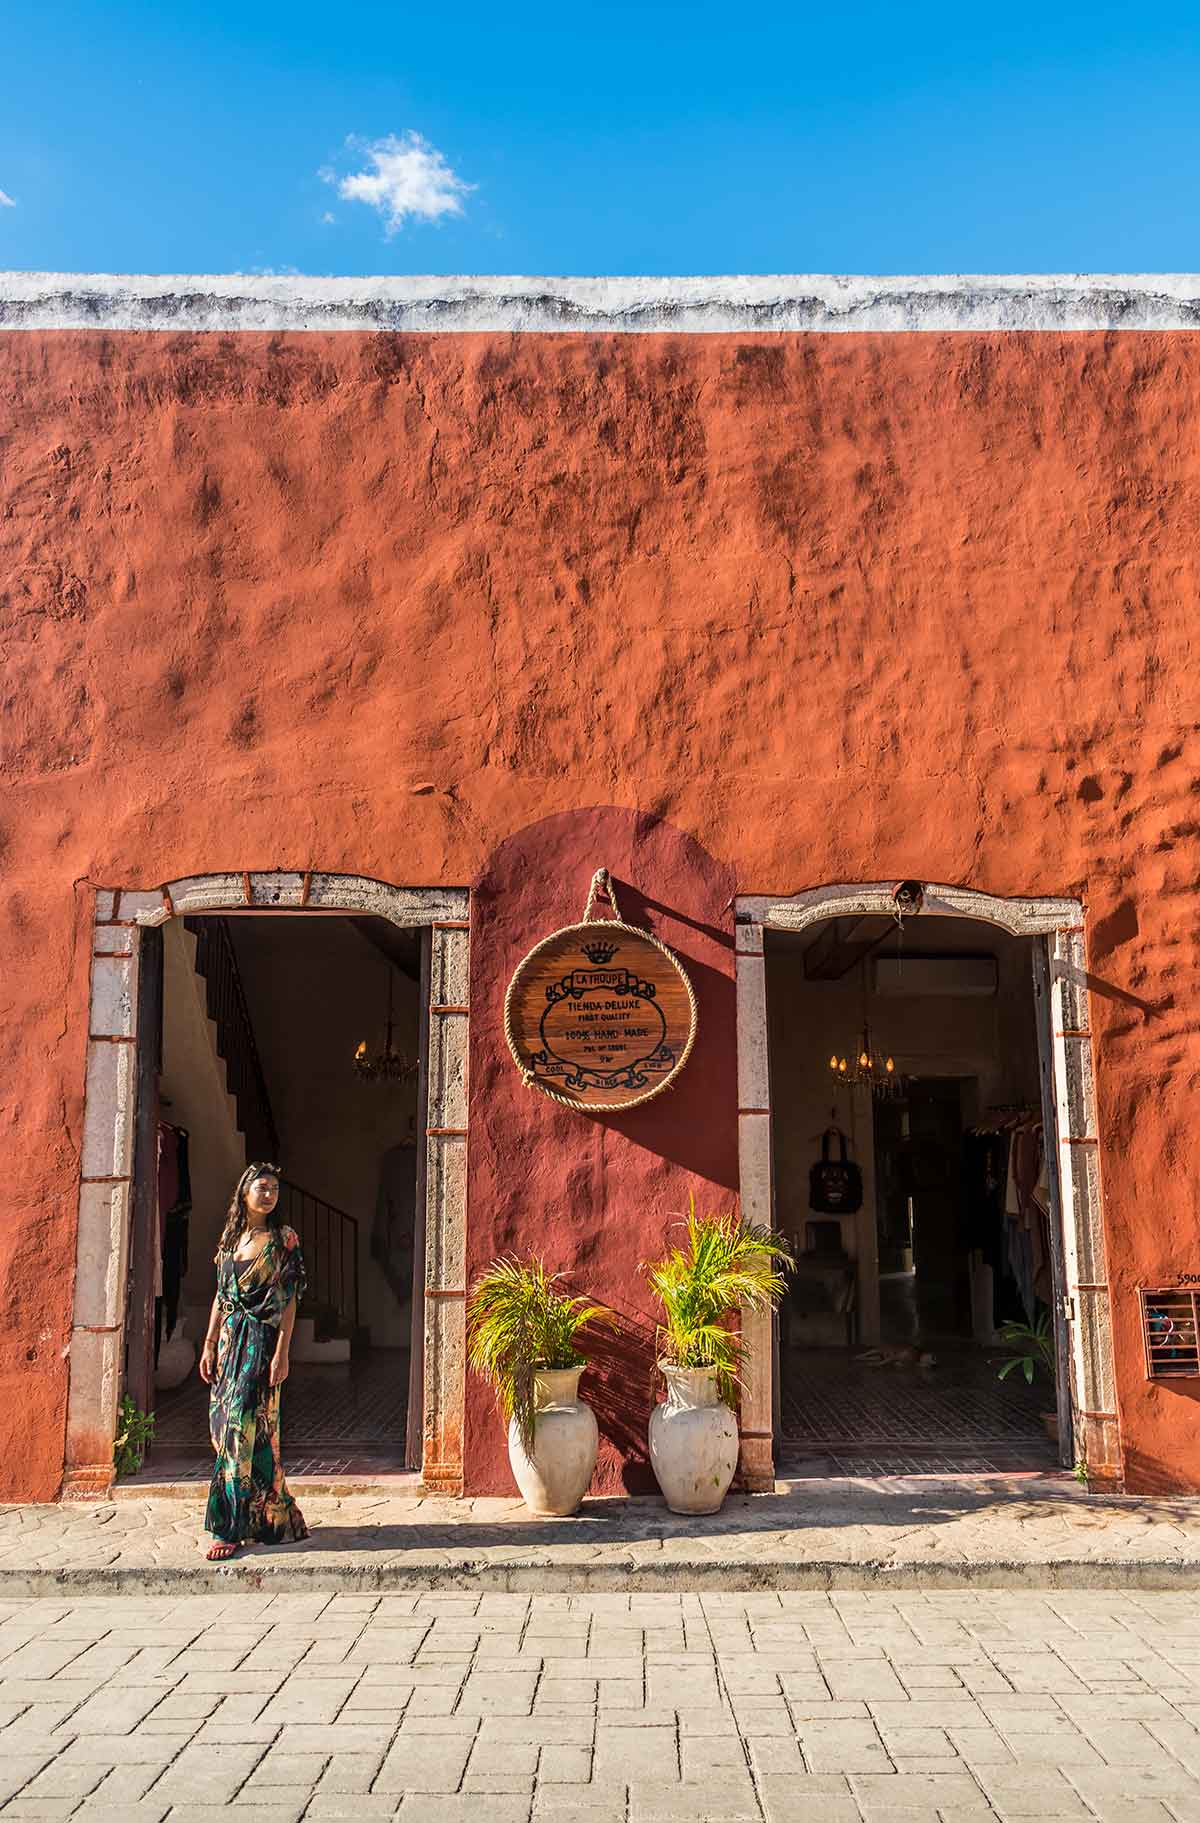 20 EPIC Valladolid Instagram spots for travelling Mexico. A woman walks over the road with a vibrant red Mexican building behind her in Valladolid.